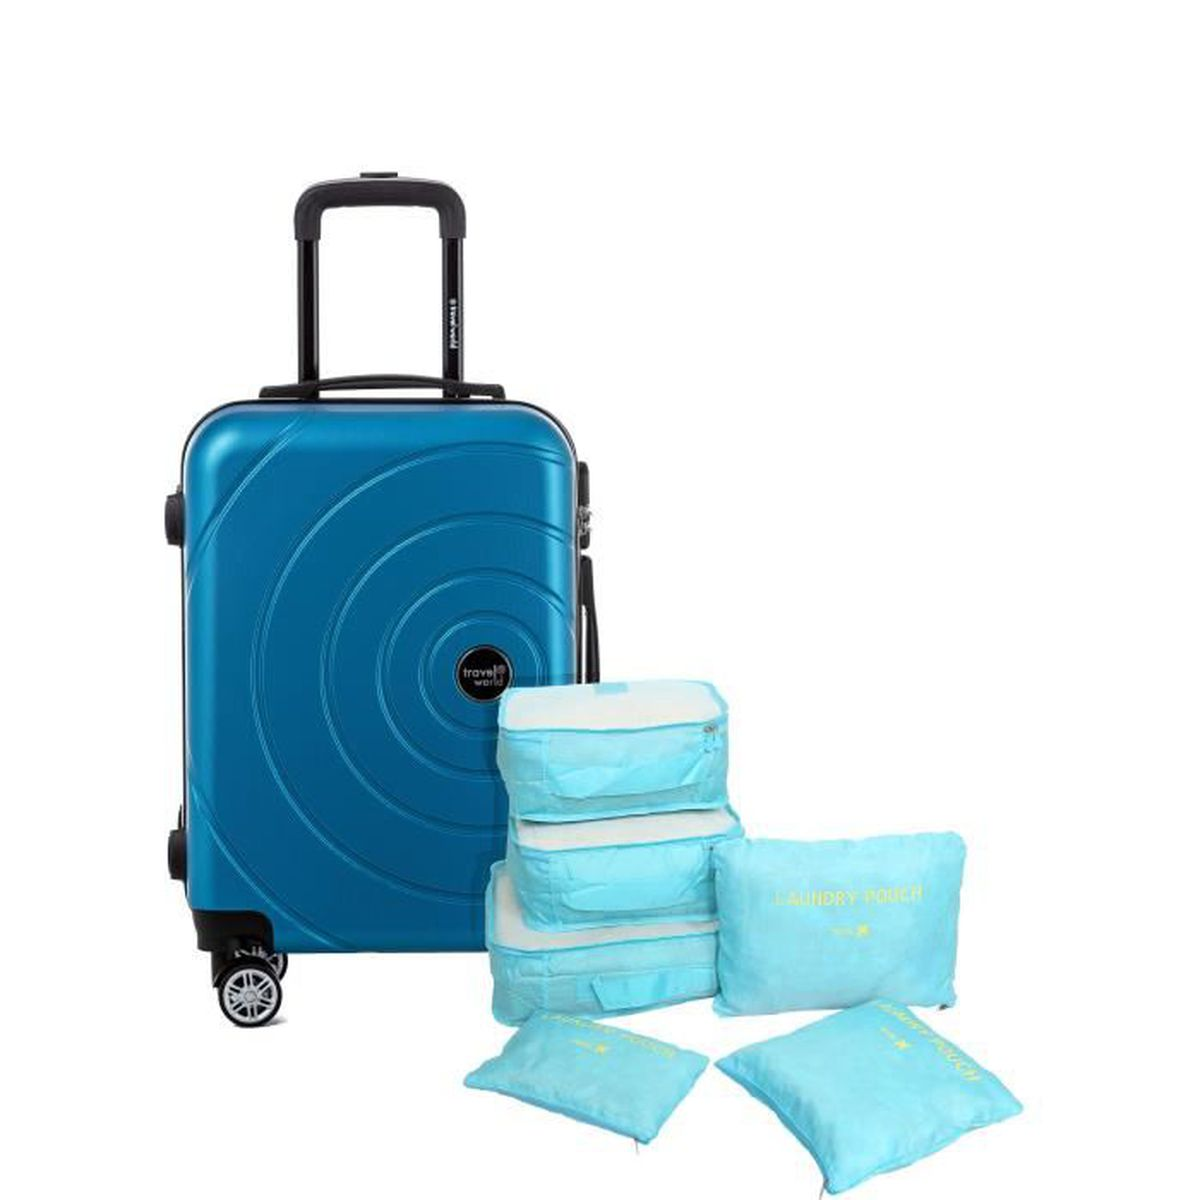 VALISE - BAGAGE TRAVEL WORLD Valise 50 Cm + Set de 6 Organisateurs